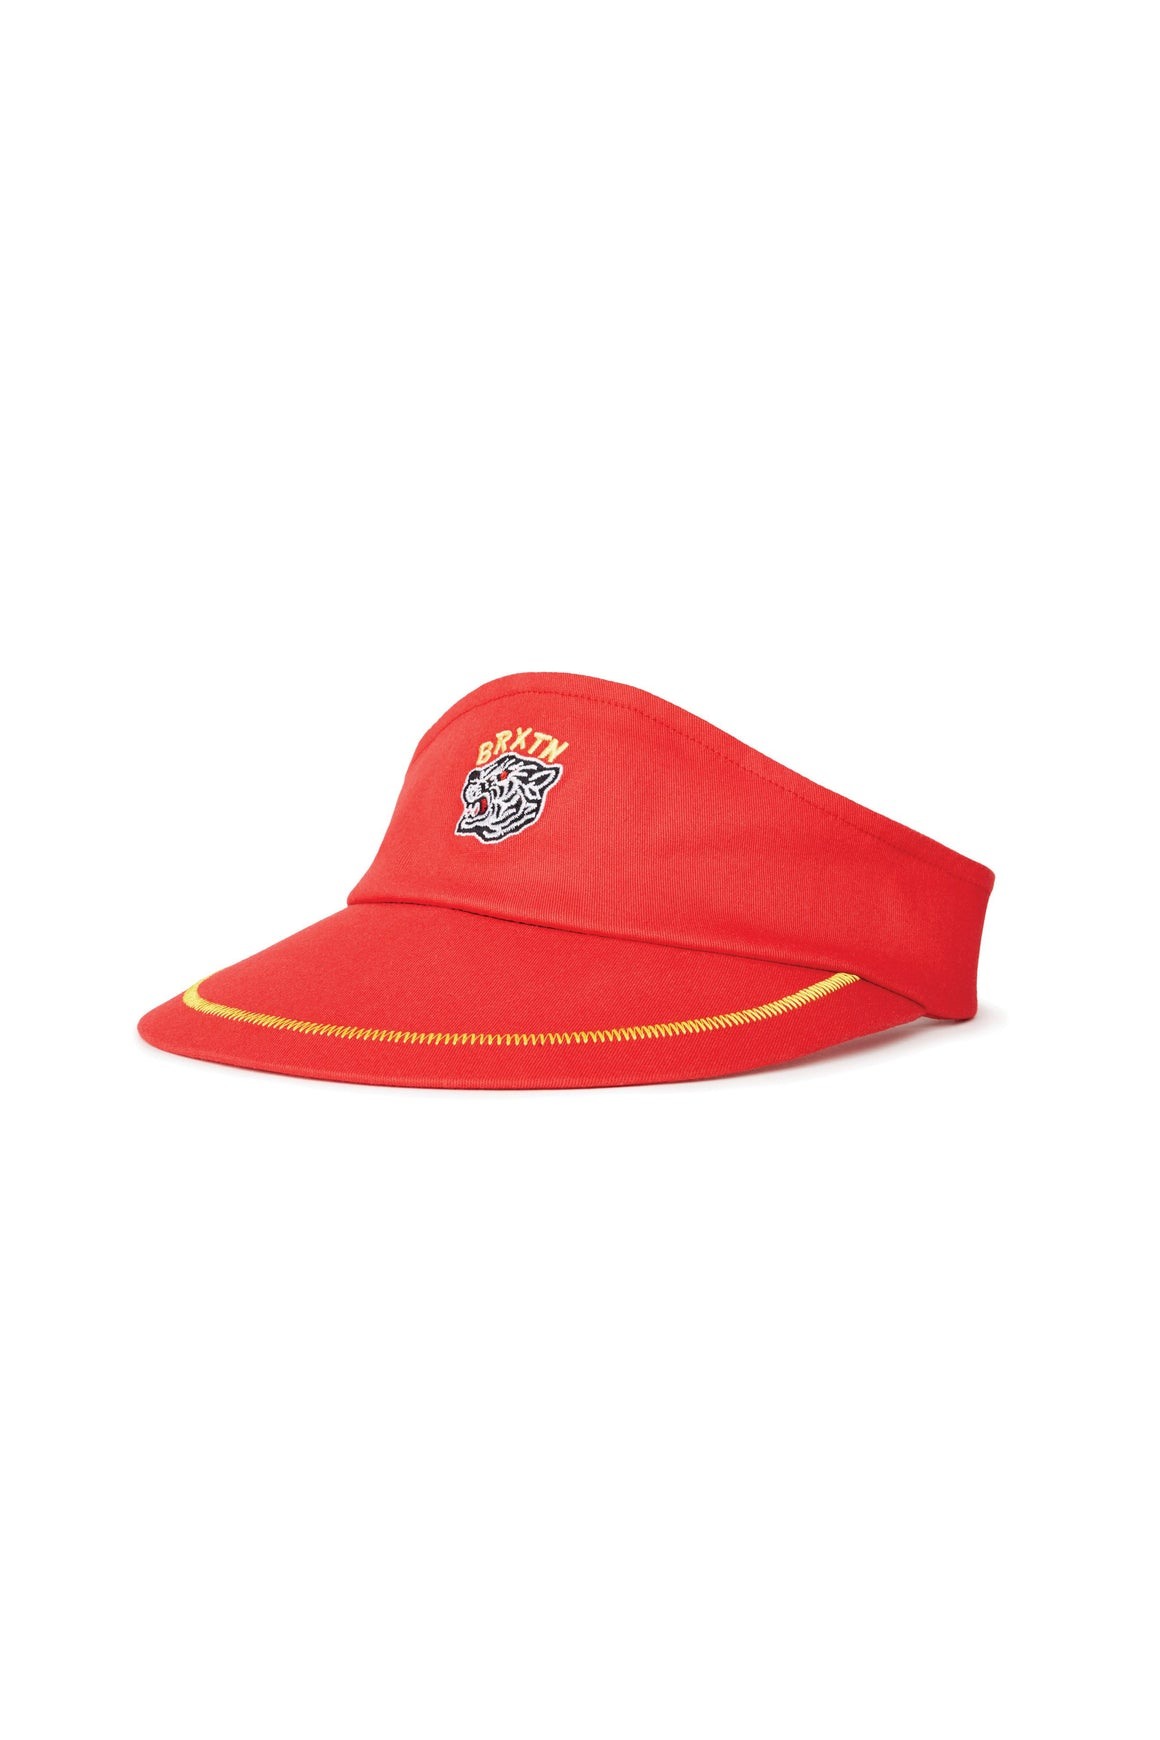 Gabriel Visor in Red - Philistine